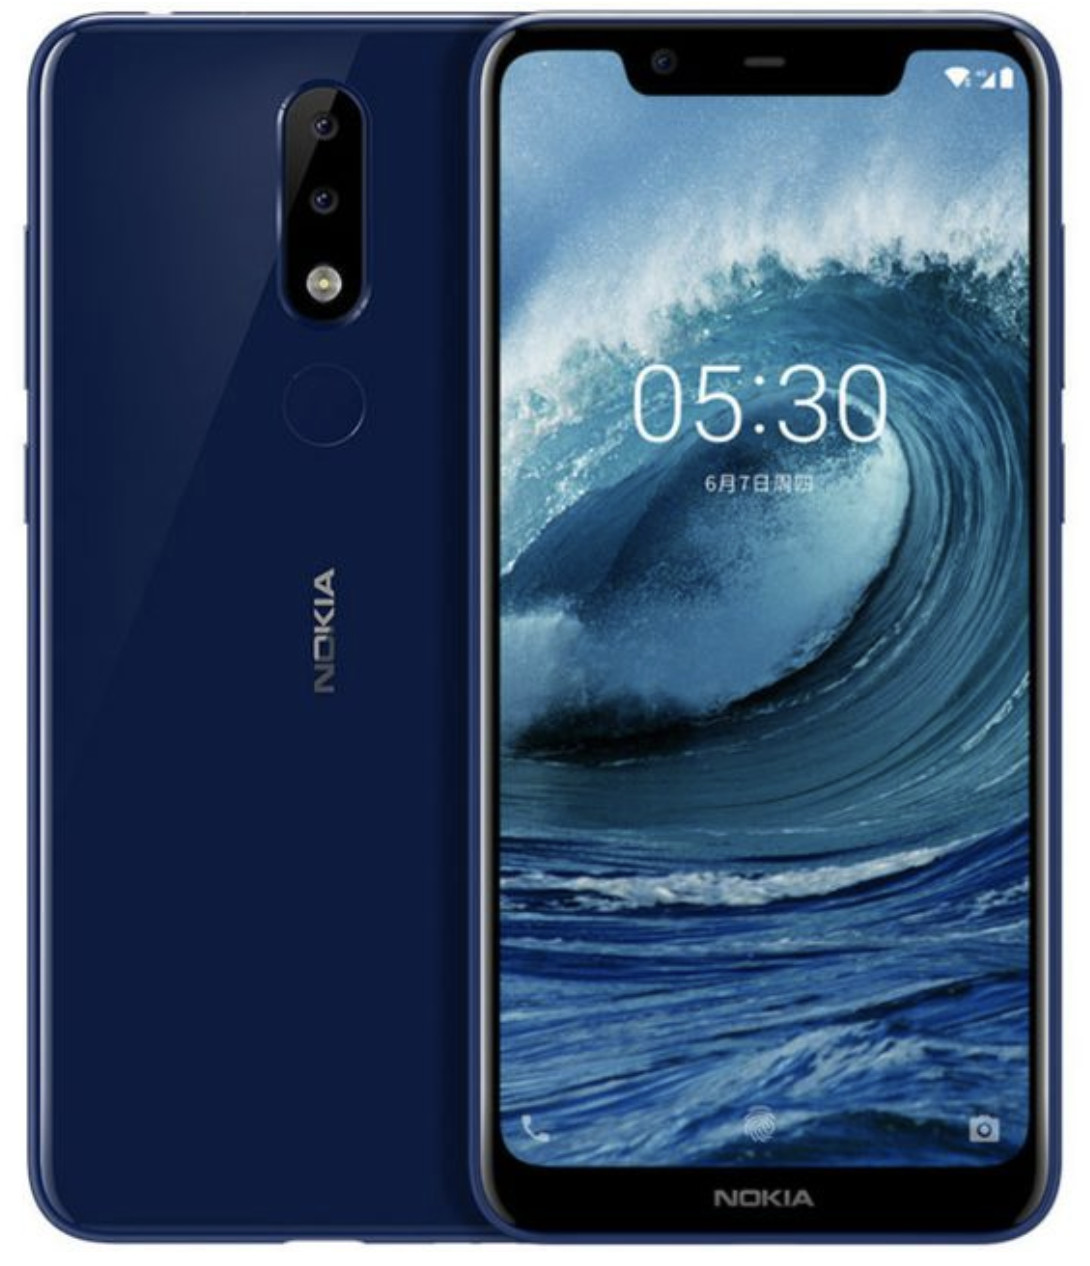 Nokia X5 with notch display expected to launch on July 11th